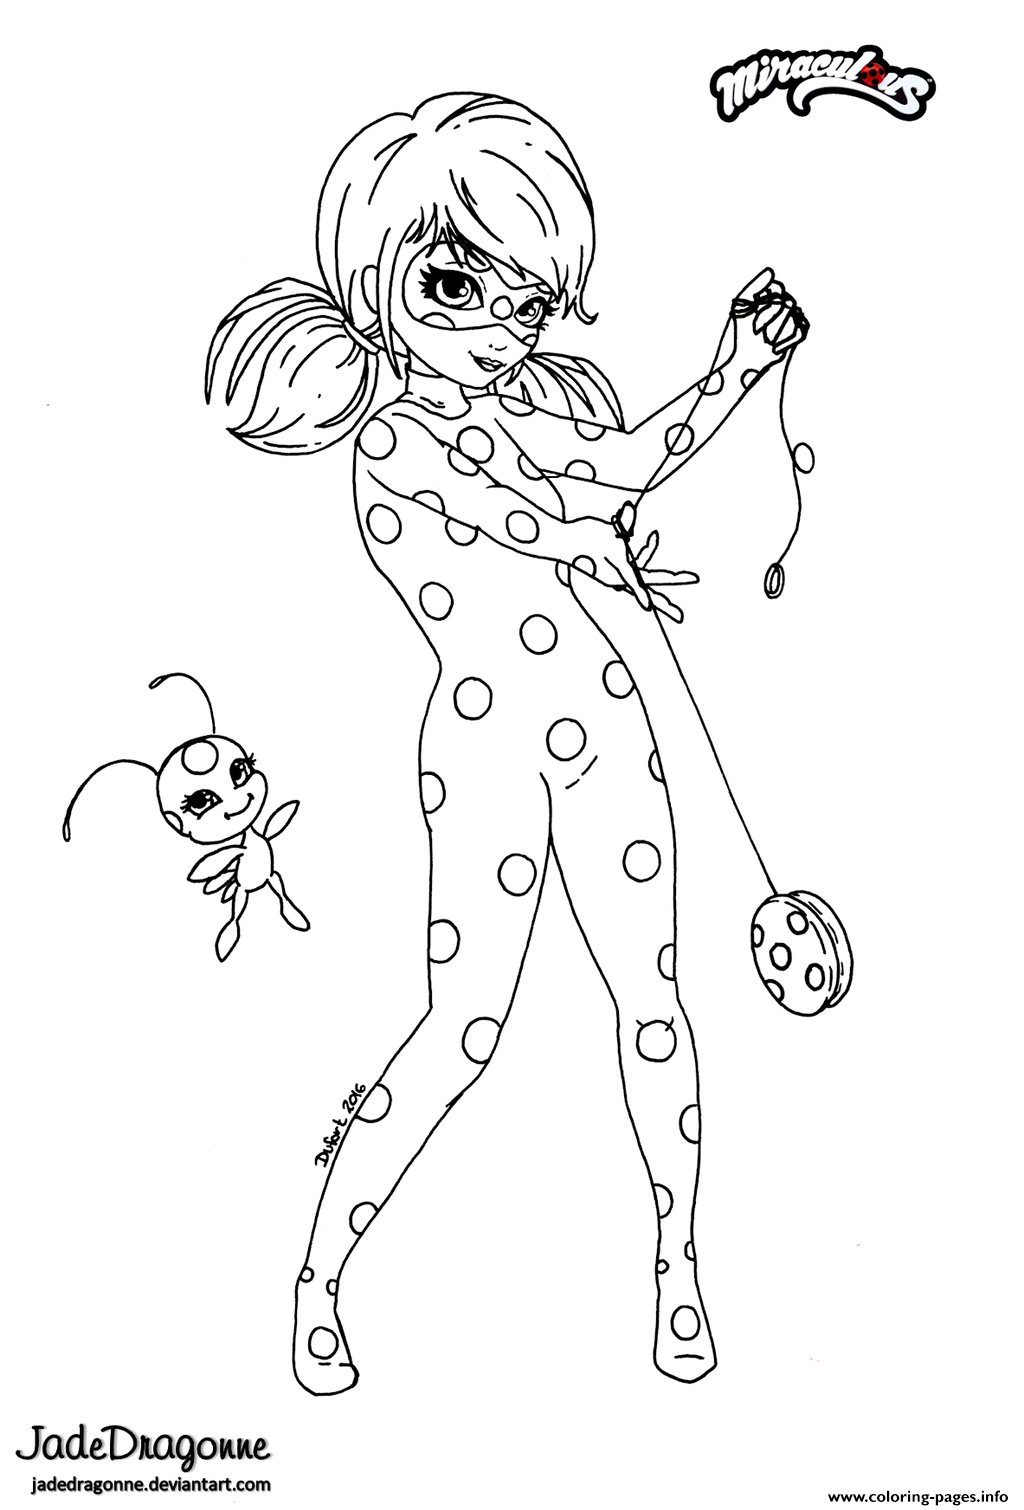 anime miraculous ladybug coloring pages miraculous ladybug tumblr in 2020 miraculous ladybug ladybug anime miraculous coloring pages